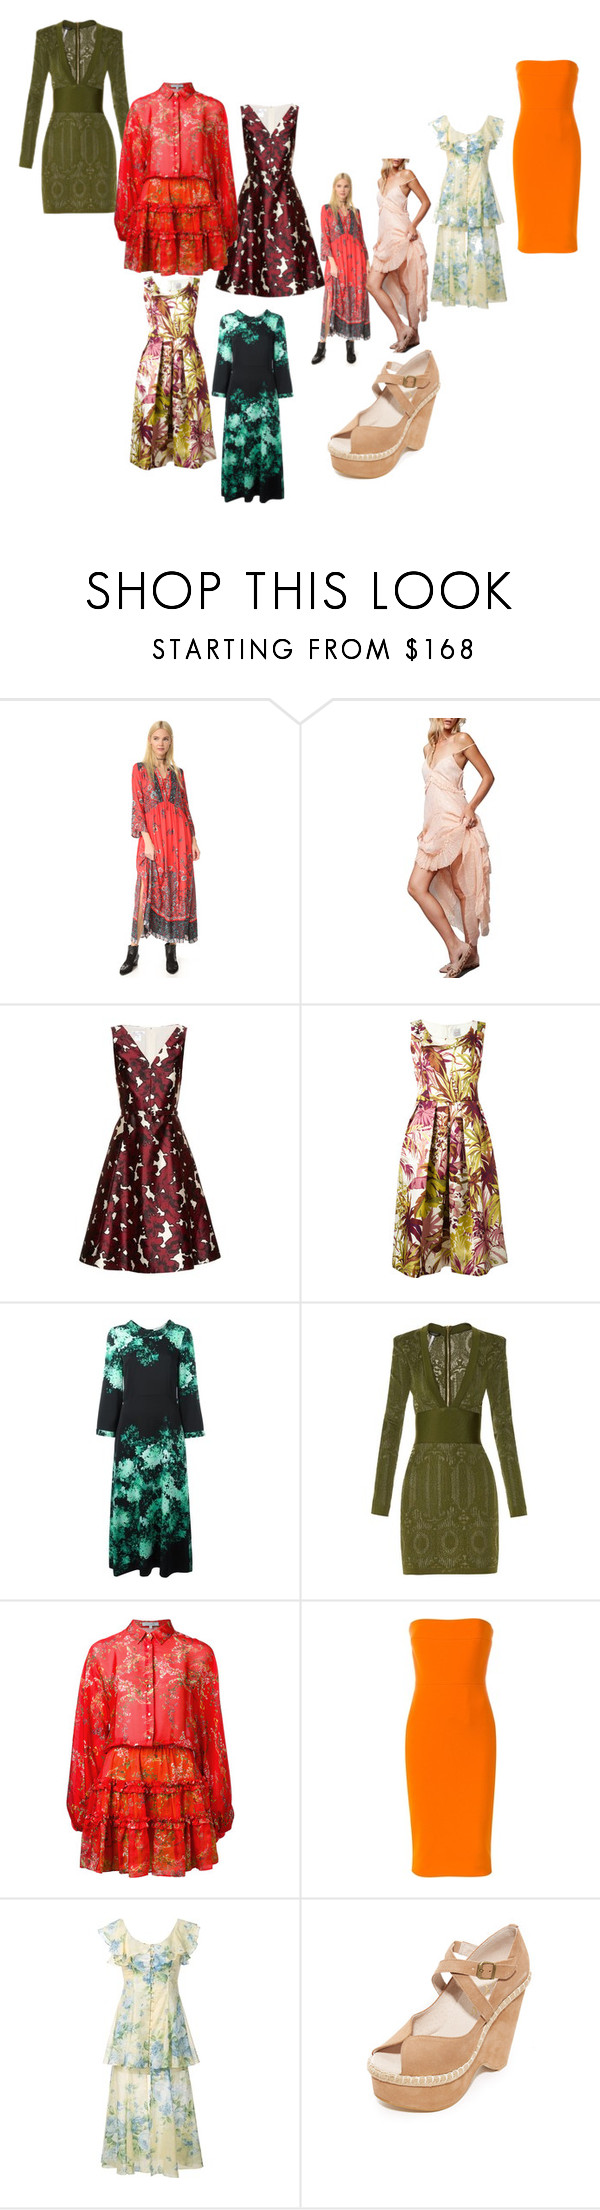 Best Fashion Dresses By Denisee Denisee On Polyvore Featuring Free People Oscar De La Renta Eggs Goat Balmain Alexis Fashion Fashion Dresses Cool Style